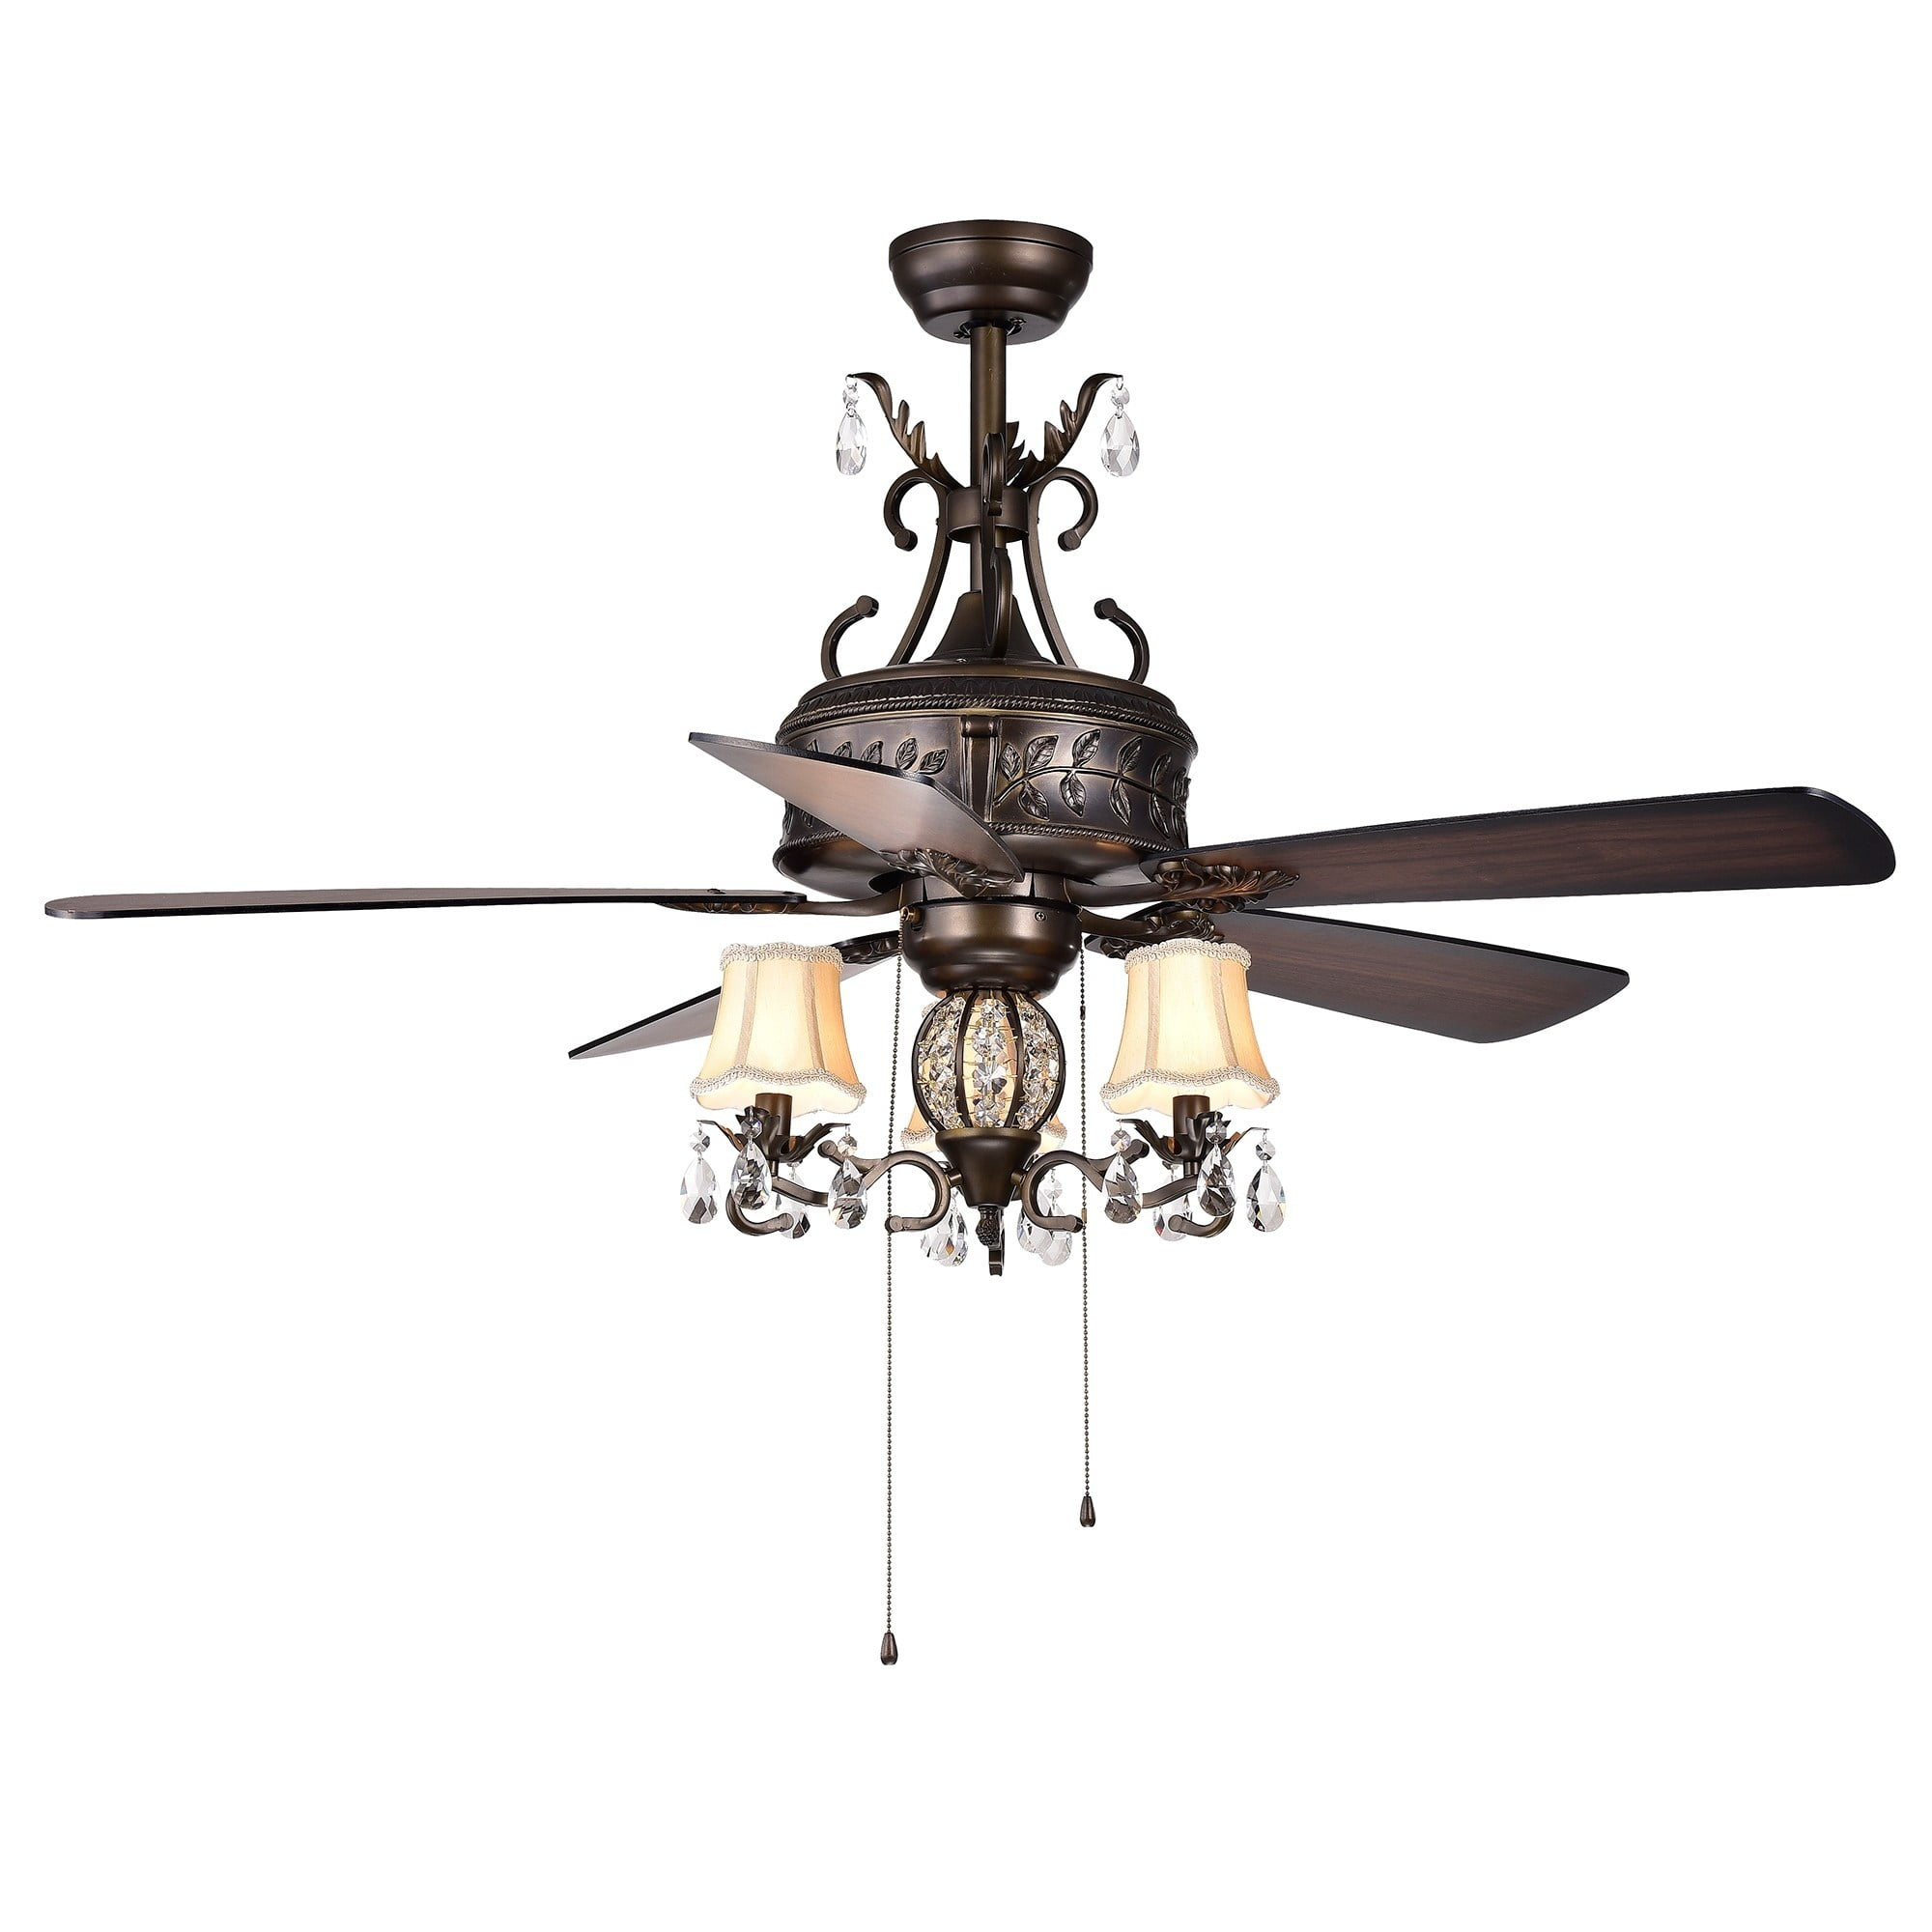 Firtha 5 Blade Antique Style 3 Light 52 Inch Ceiling Fan